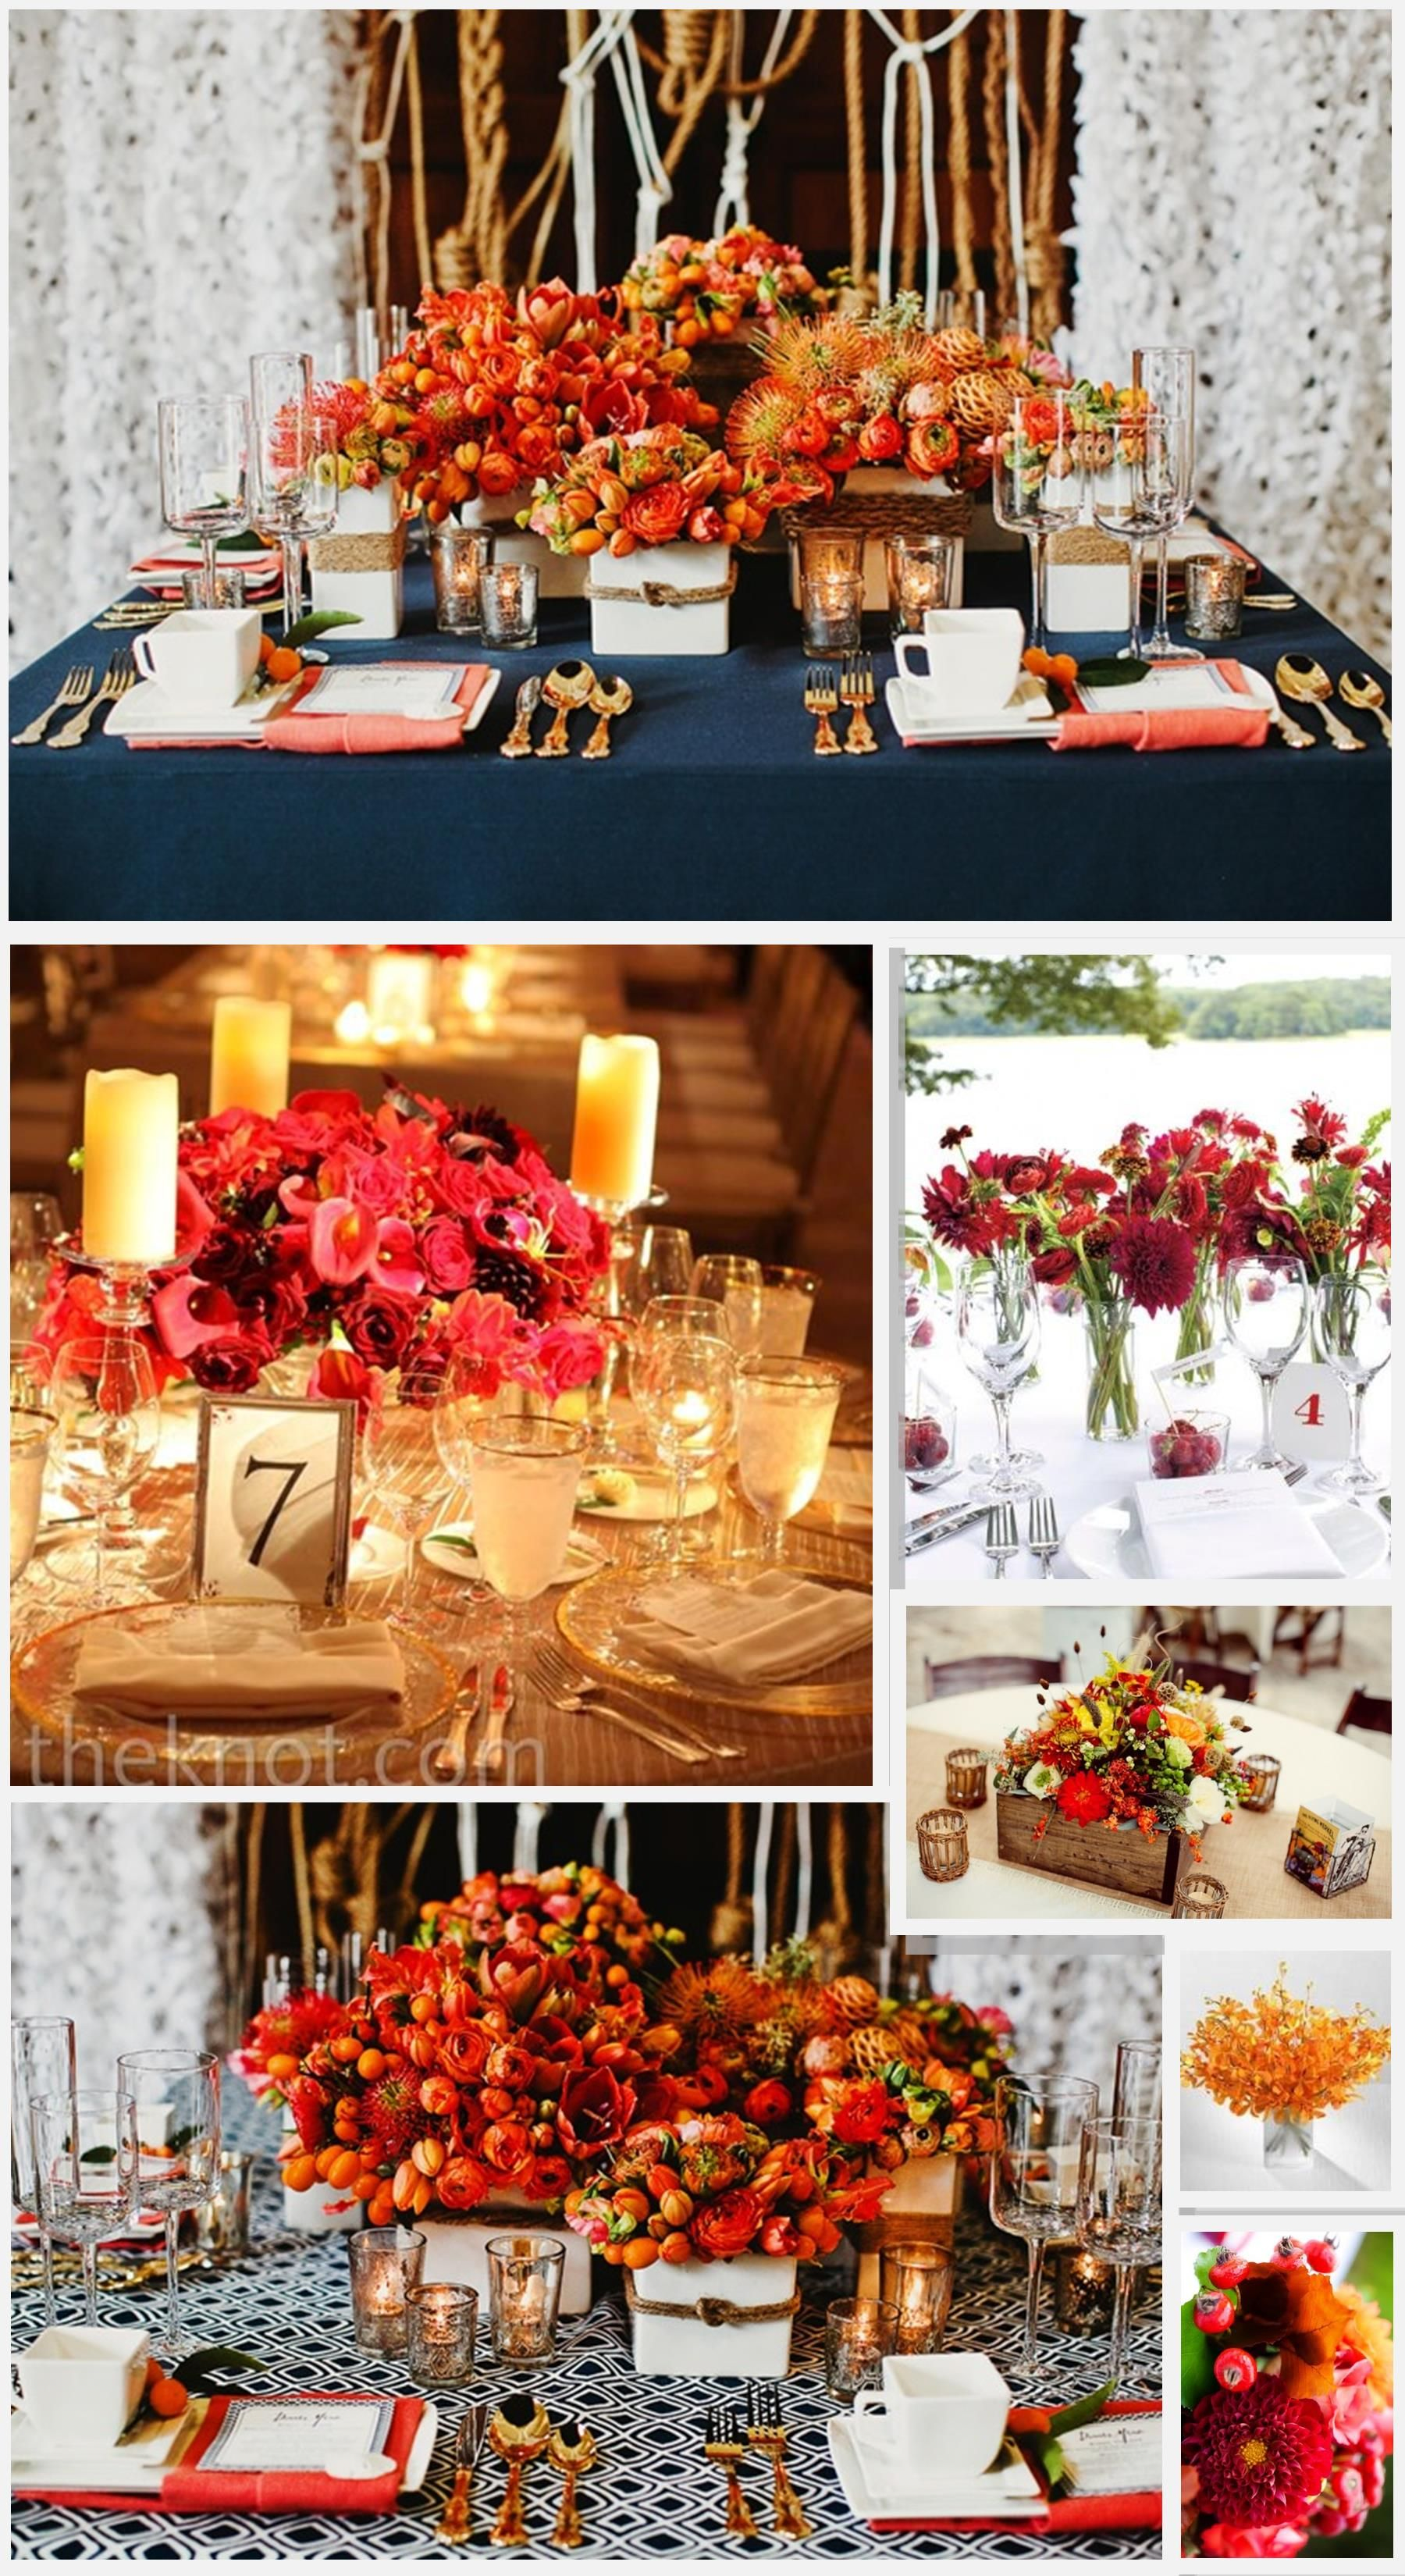 Our Wedding Colors Are Red Navy Blue And Orange So The Tables And